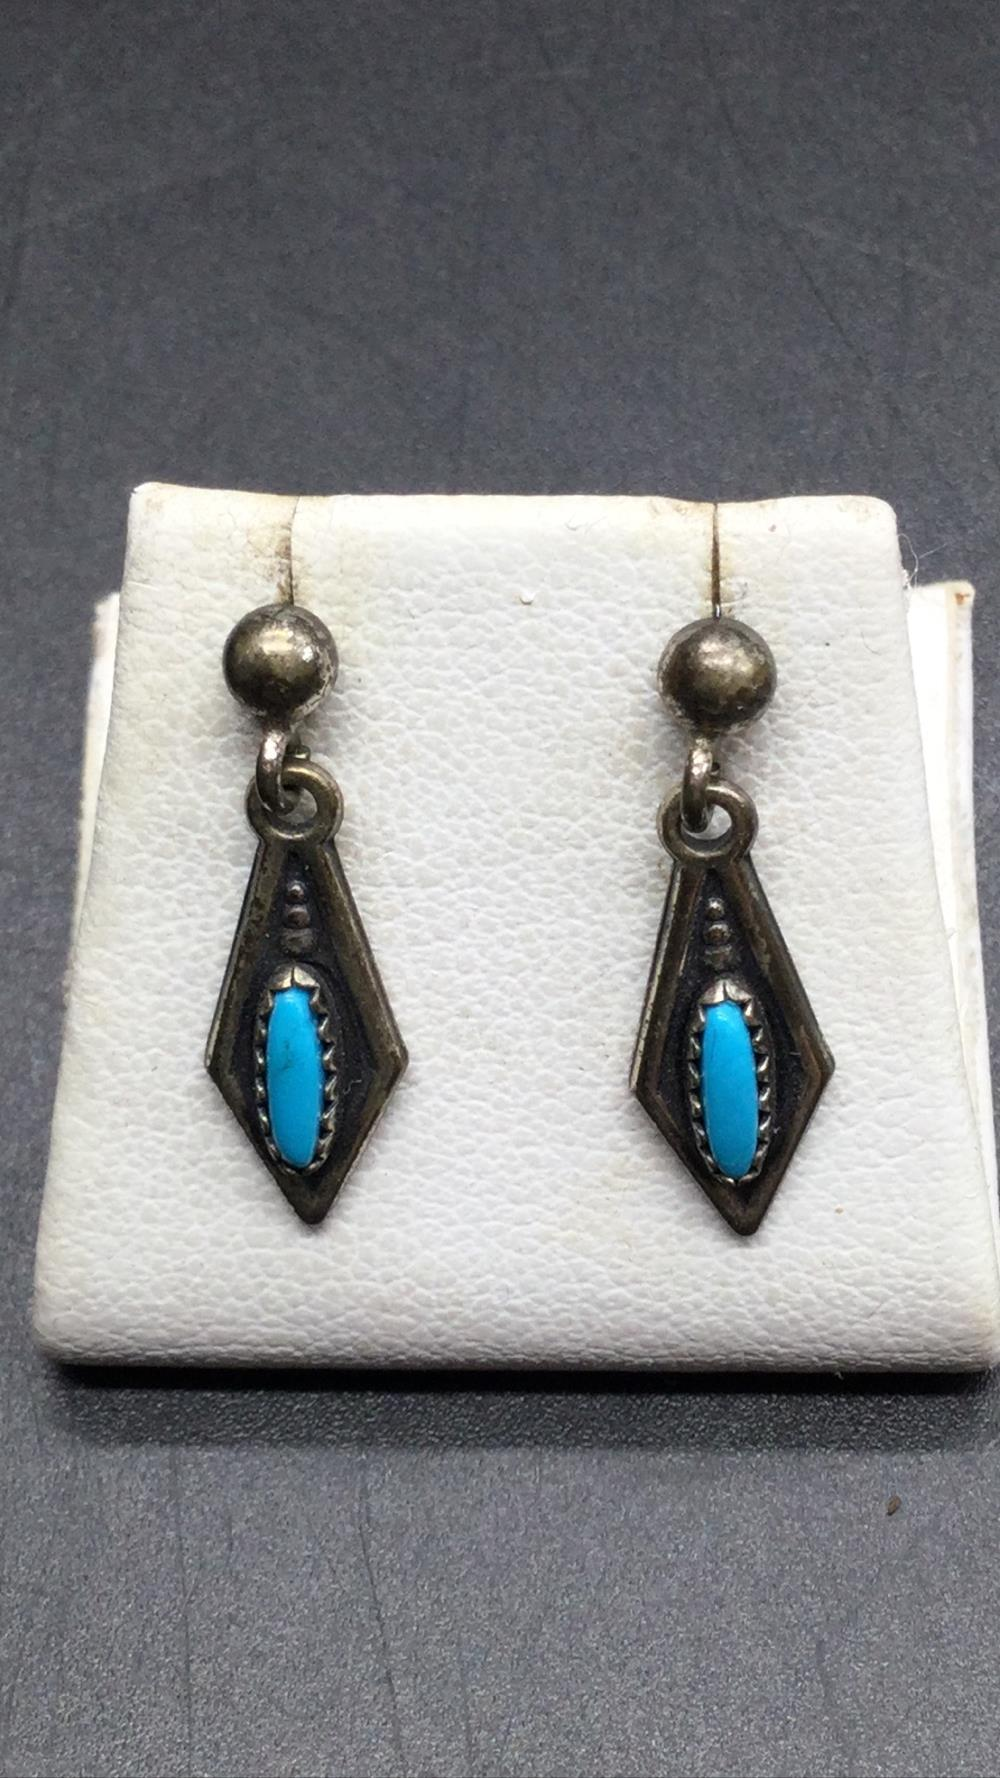 Turquoise petite point earrings